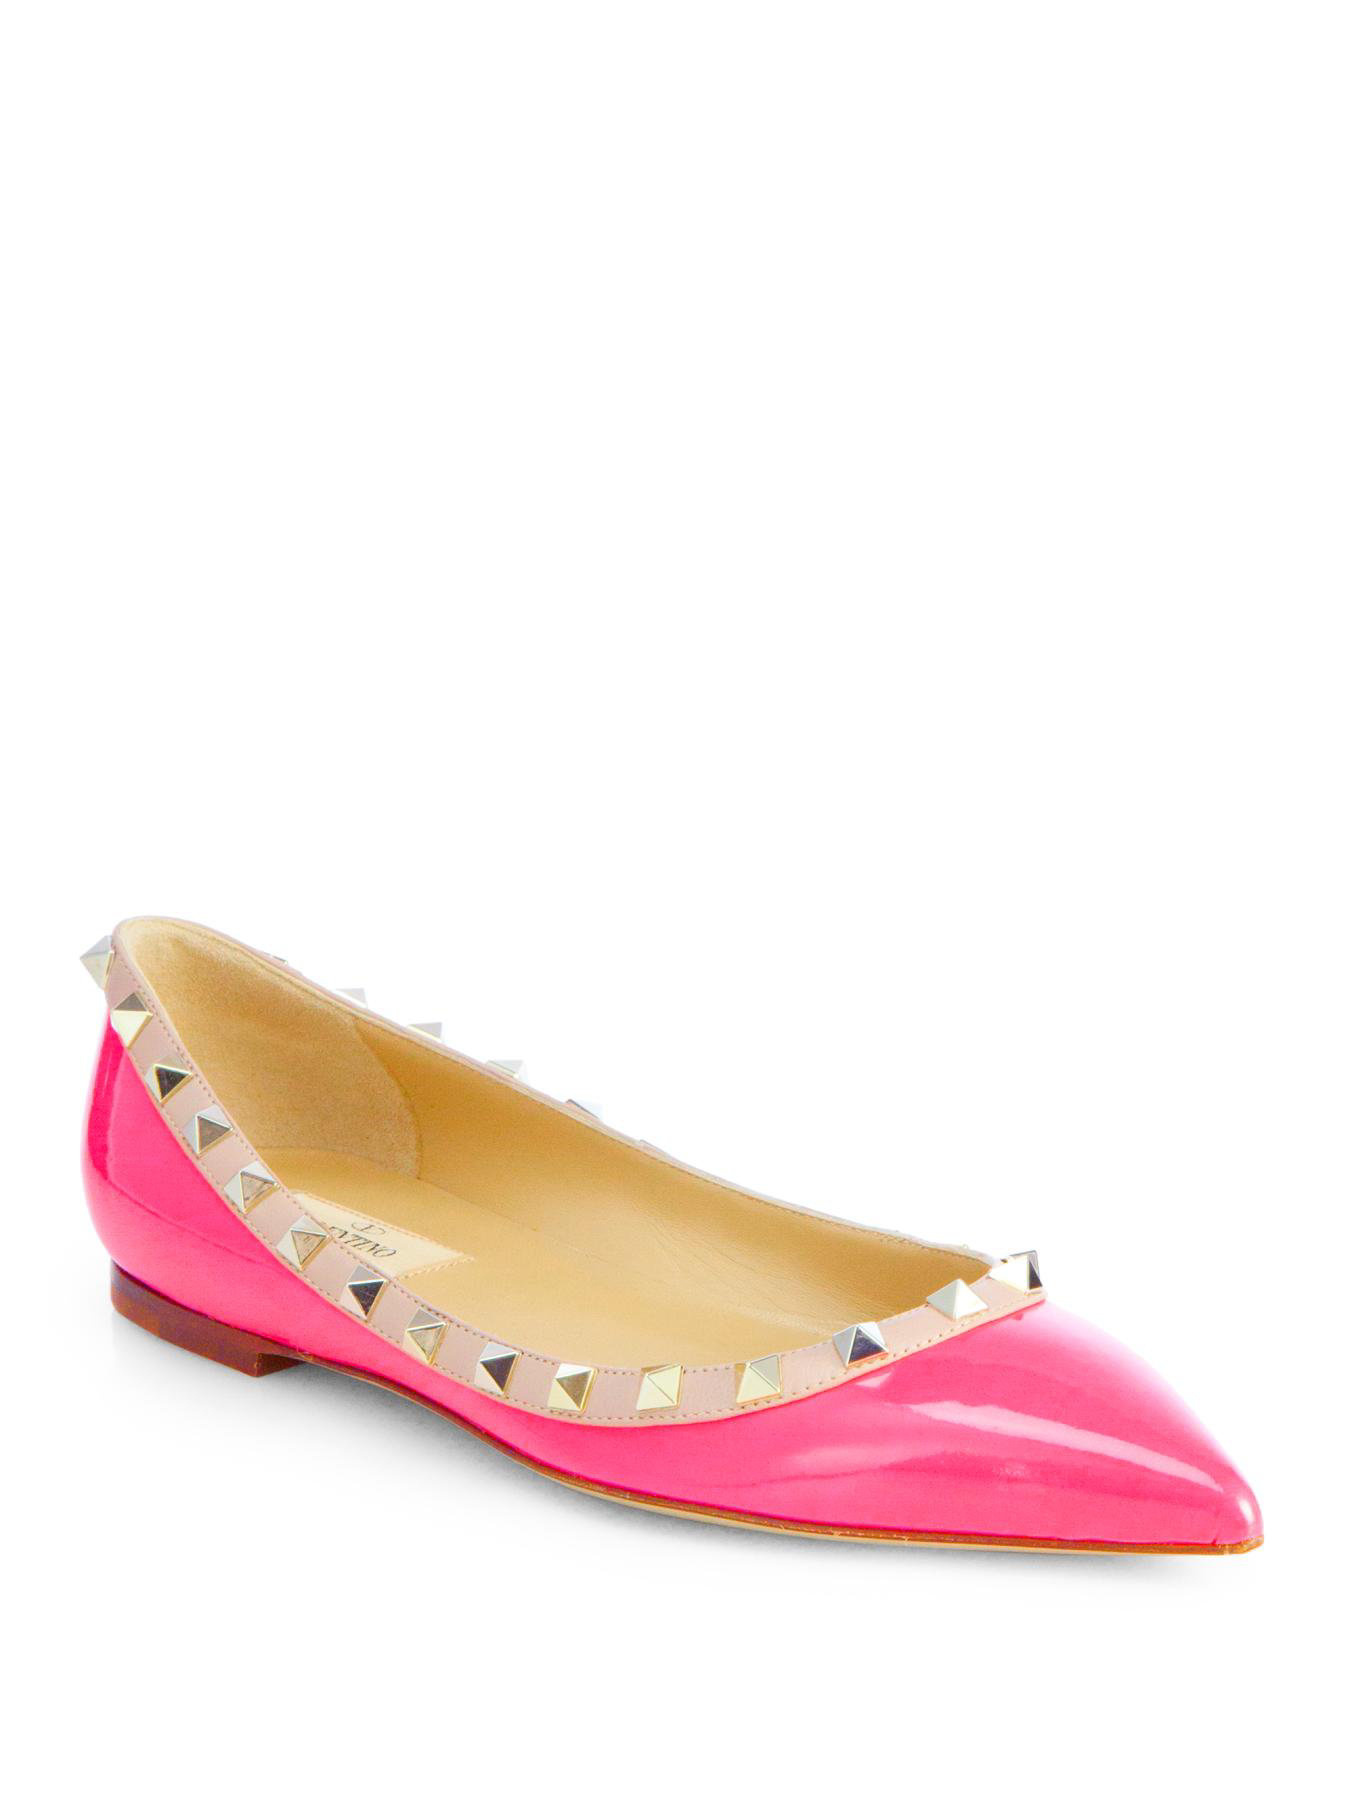 Hot Pink Patent Leather Shoes